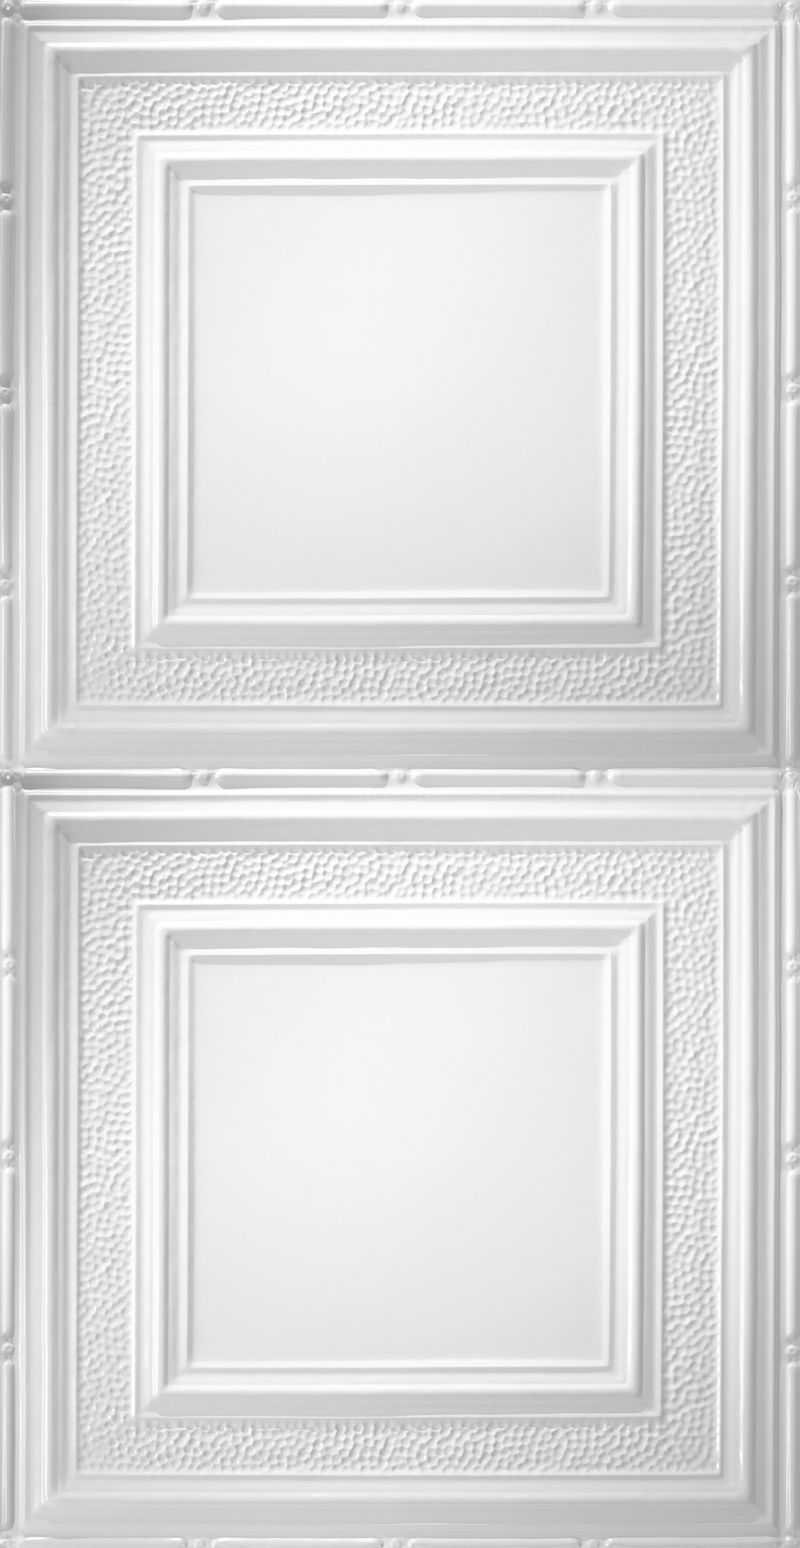 METALLAIRE Surface Mount Ceilings - 5424509NWH   Armstrong Ceilings ...